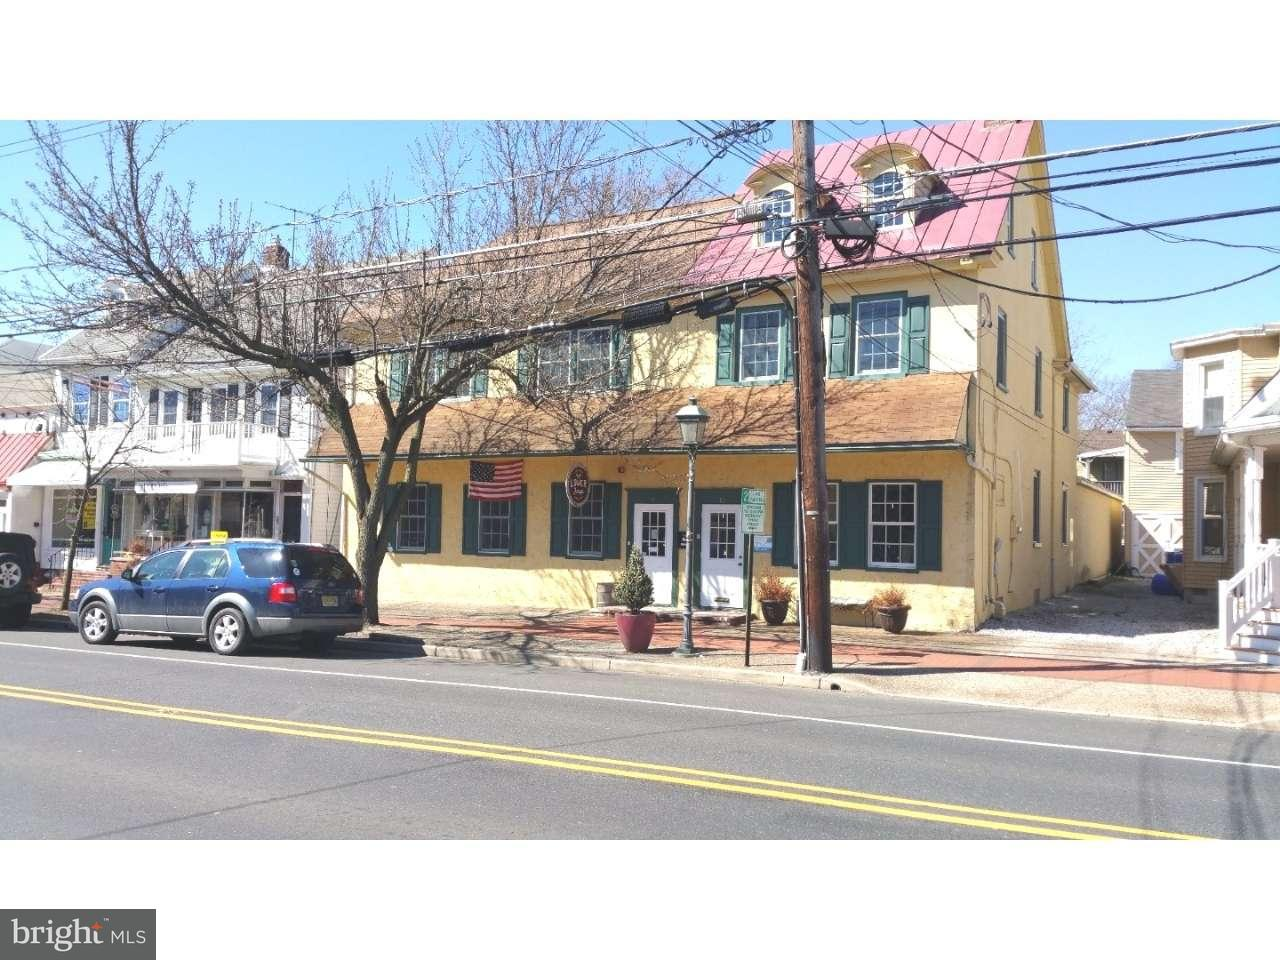 Single Family Home for Sale at 10 S MAIN Street Medford Township, New Jersey 08055 United States